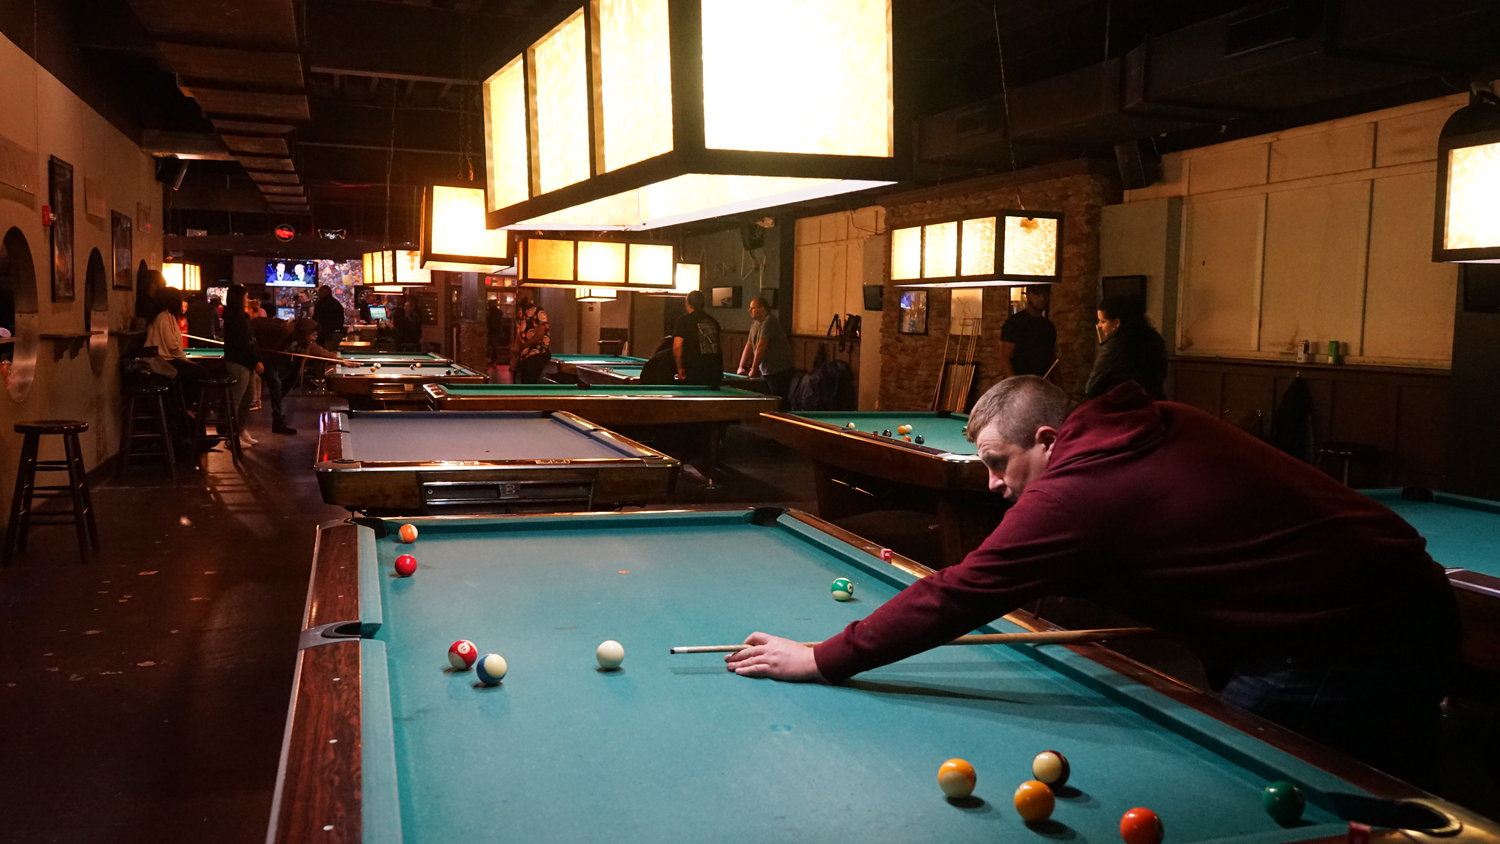 A patron shot a game of pool on the last Saturday before Guys and Dolls was set to close.